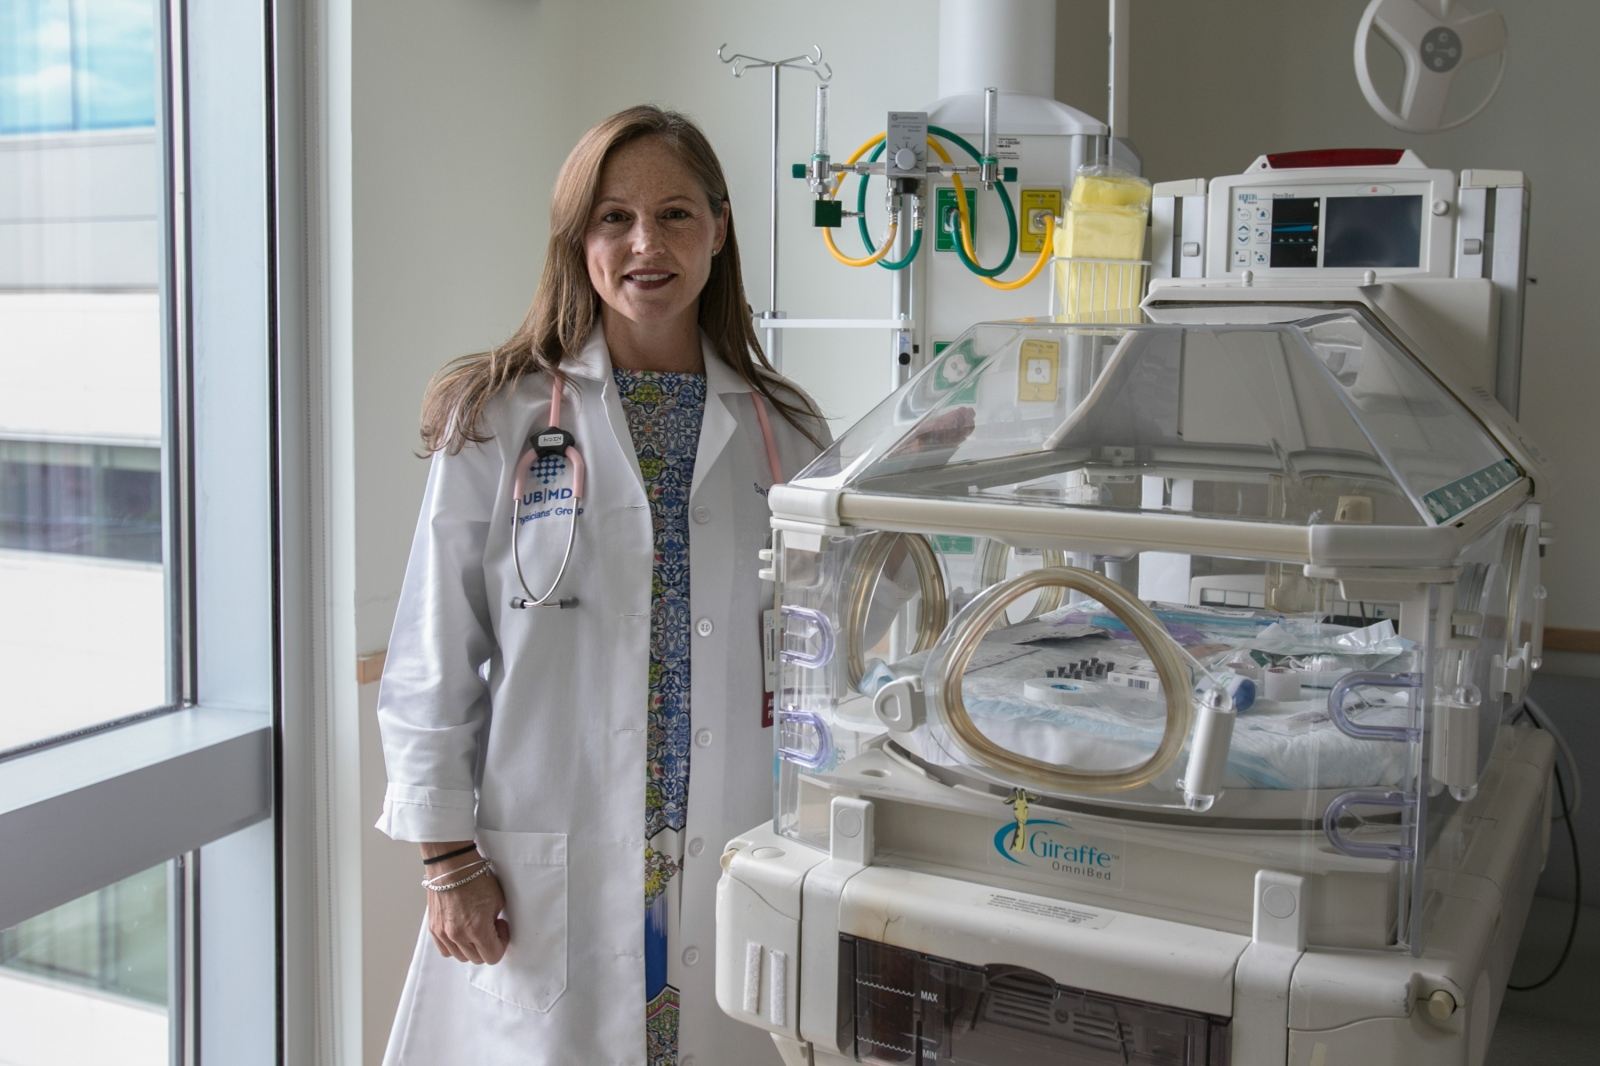 Dr. Sara K. Berkelhamer is an attending physician for neonatology and director of respiratory therapy at the John R. Oishei Children's Hospital in Buffalo, N.Y.